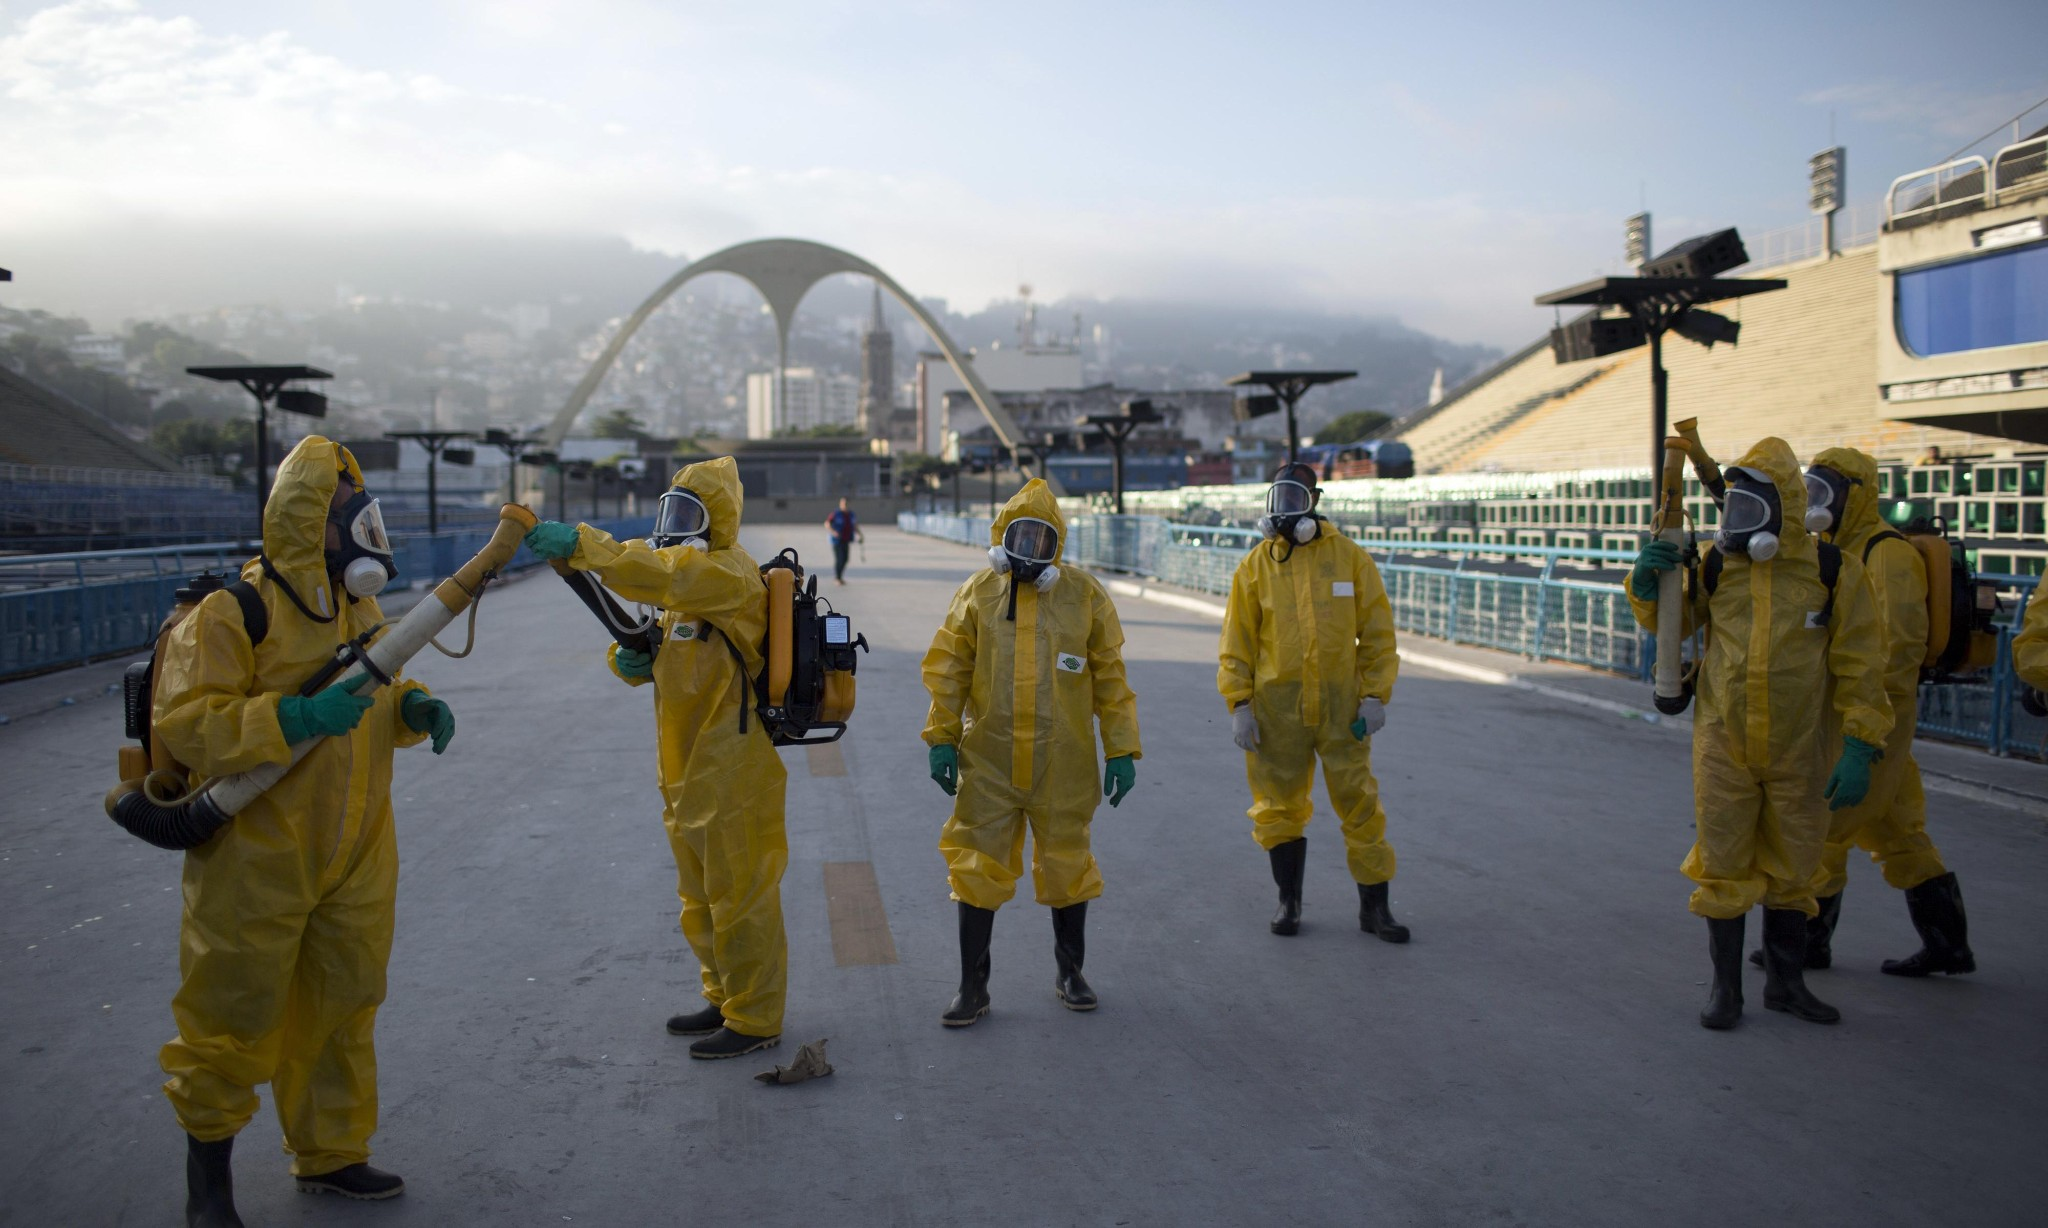 WHO urged to consider moving Rio Olympics because of Zika